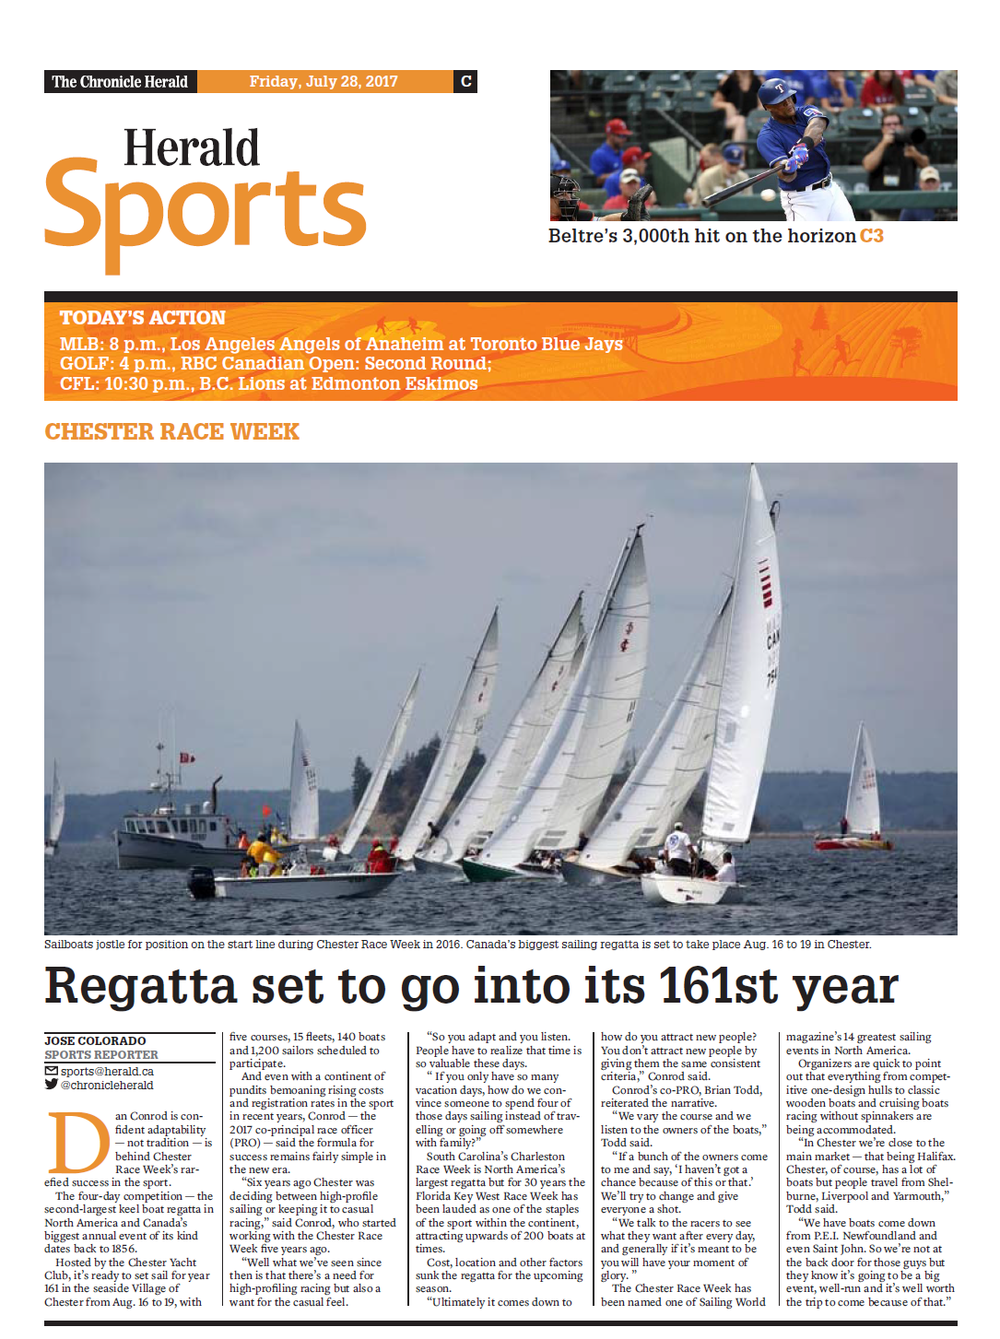 REGATTA SET TO GO INTO ITS 161ST YEAR - Halifax, N.S. - July 28, 2017